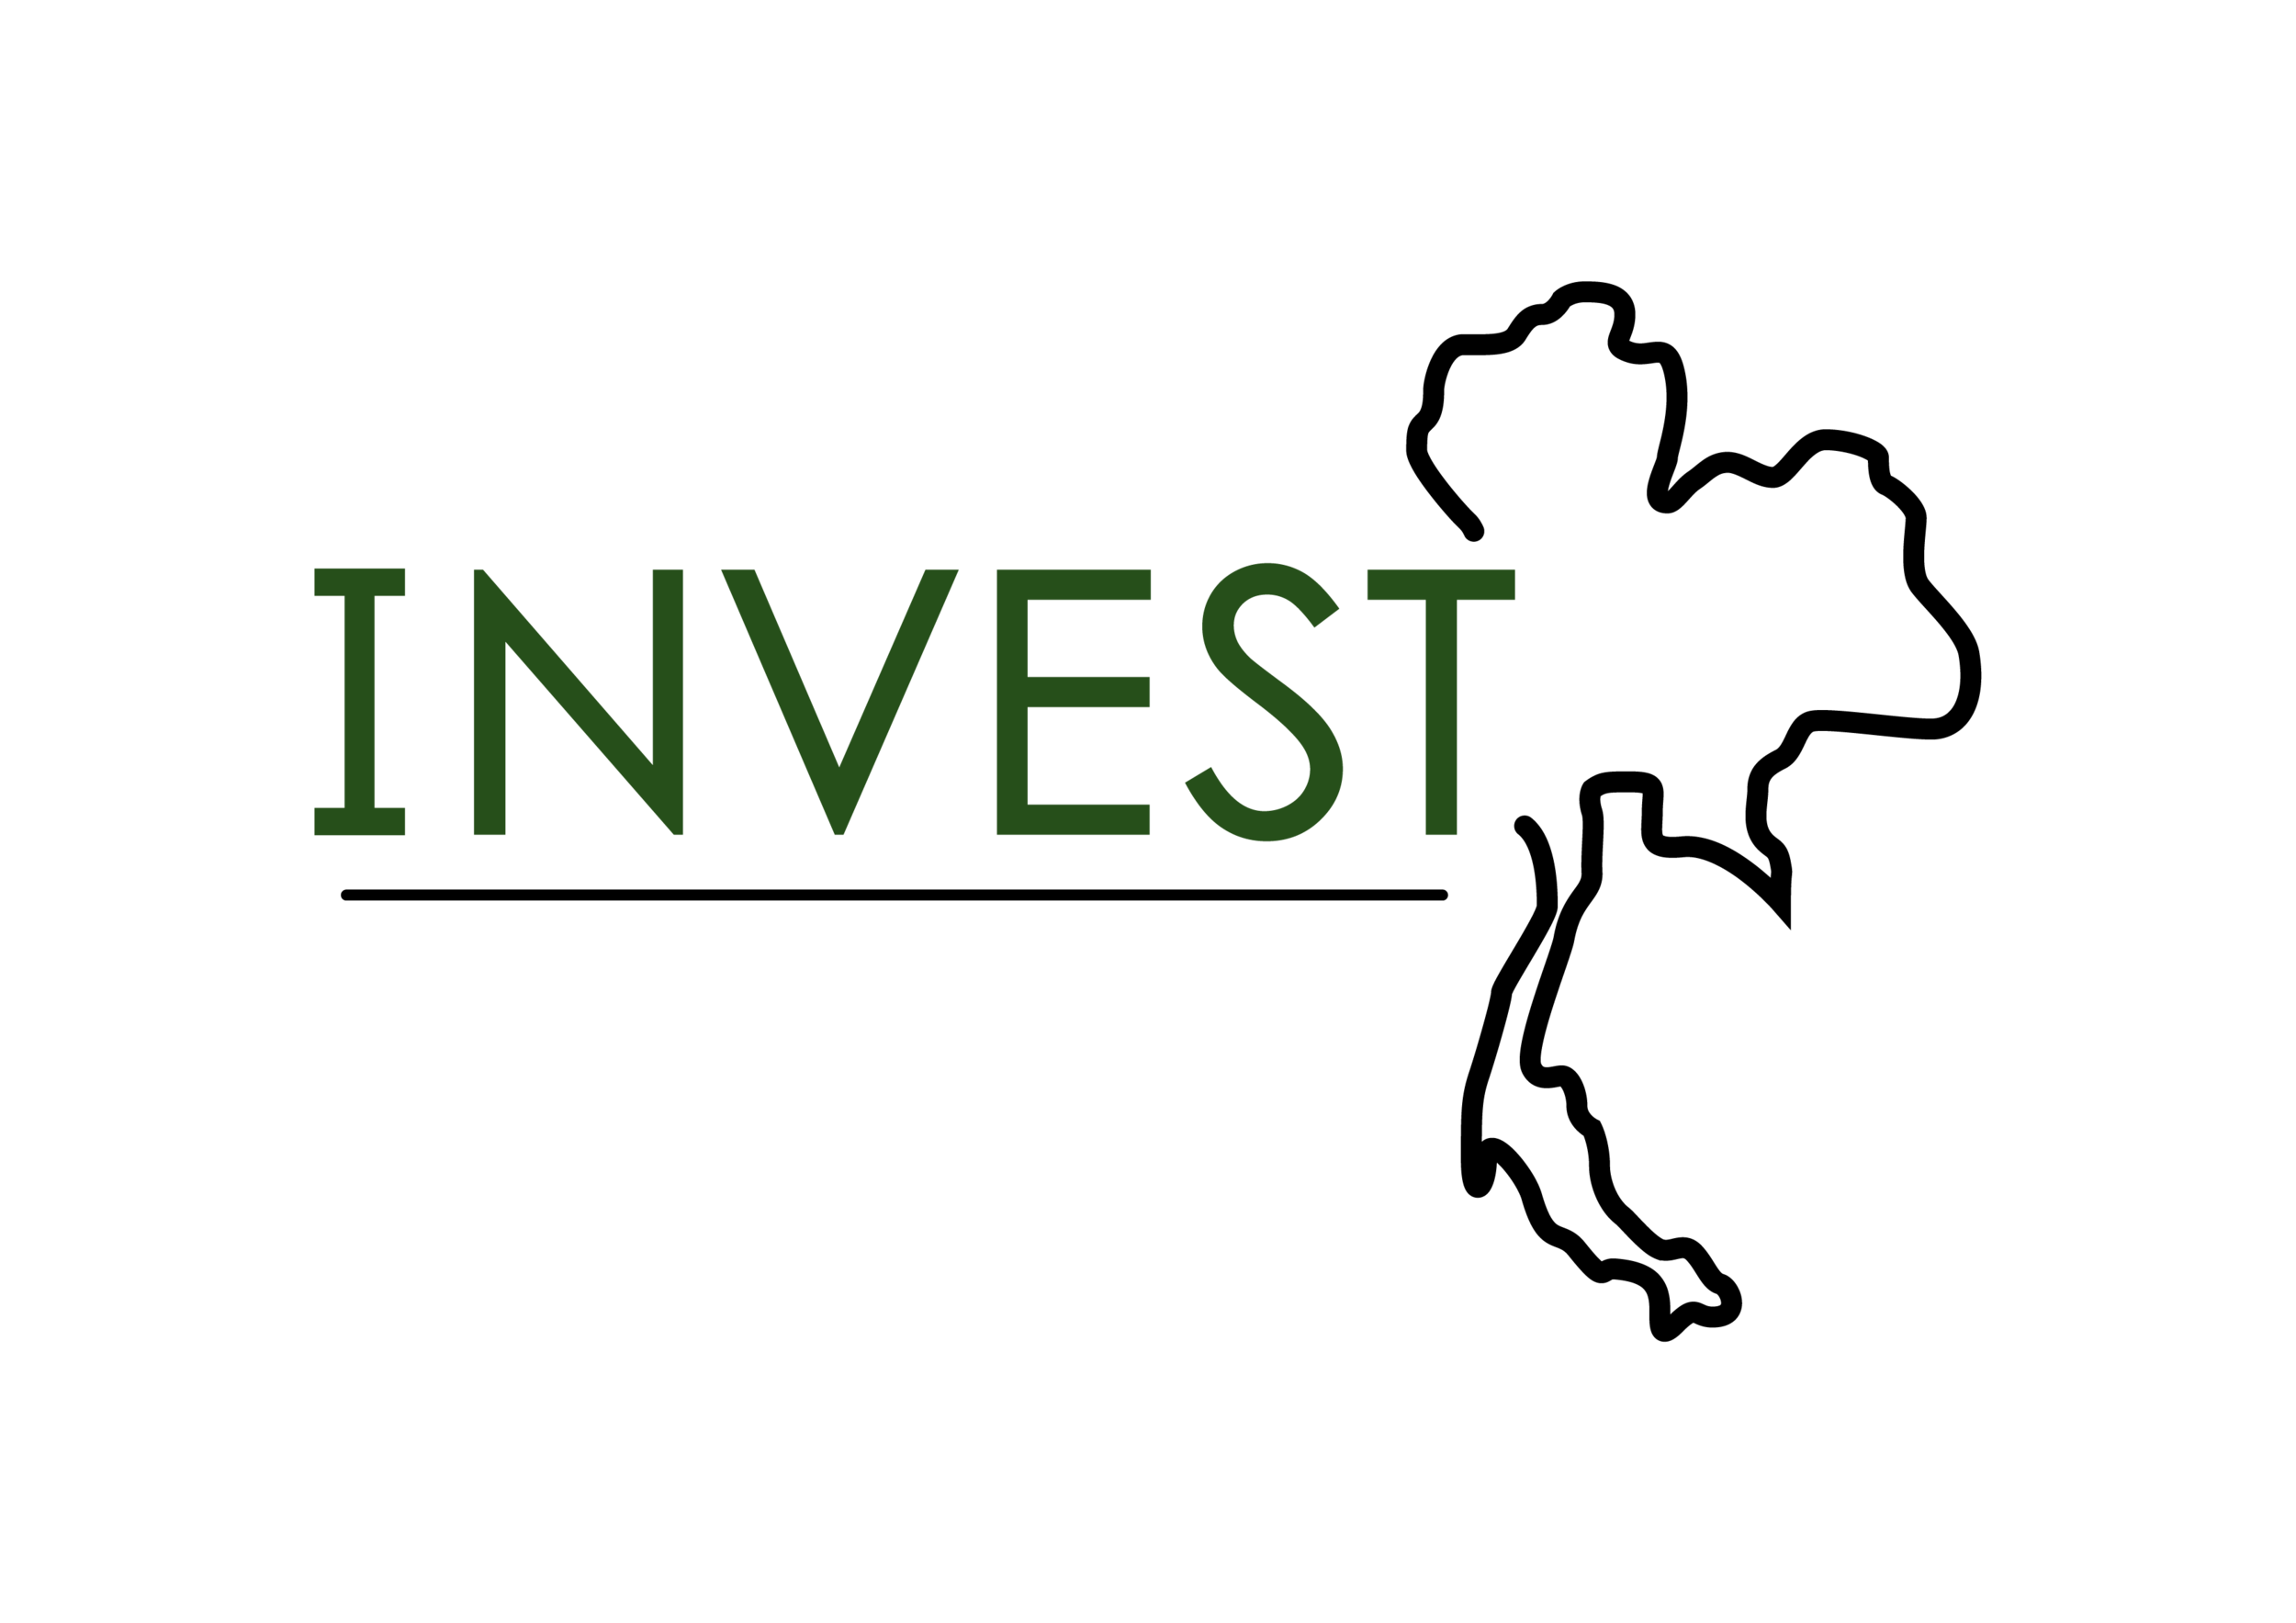 INVEST LOGO.png